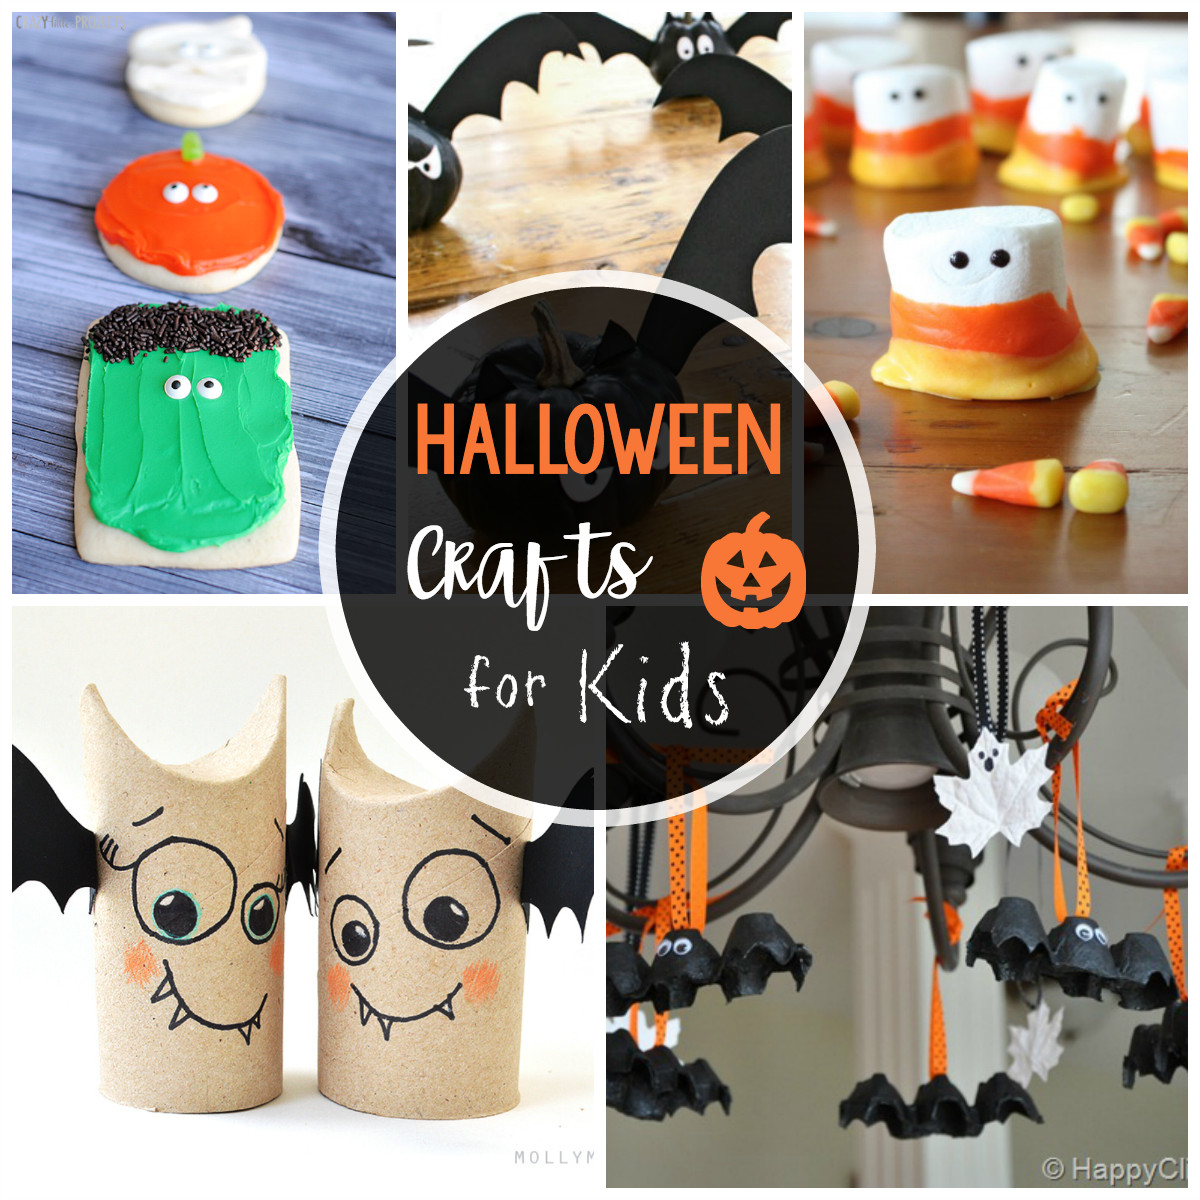 Best ideas about Halloween Craft Ideas For Kids . Save or Pin 25 Cute & Easy Halloween Crafts for Kids Crazy Little Now.